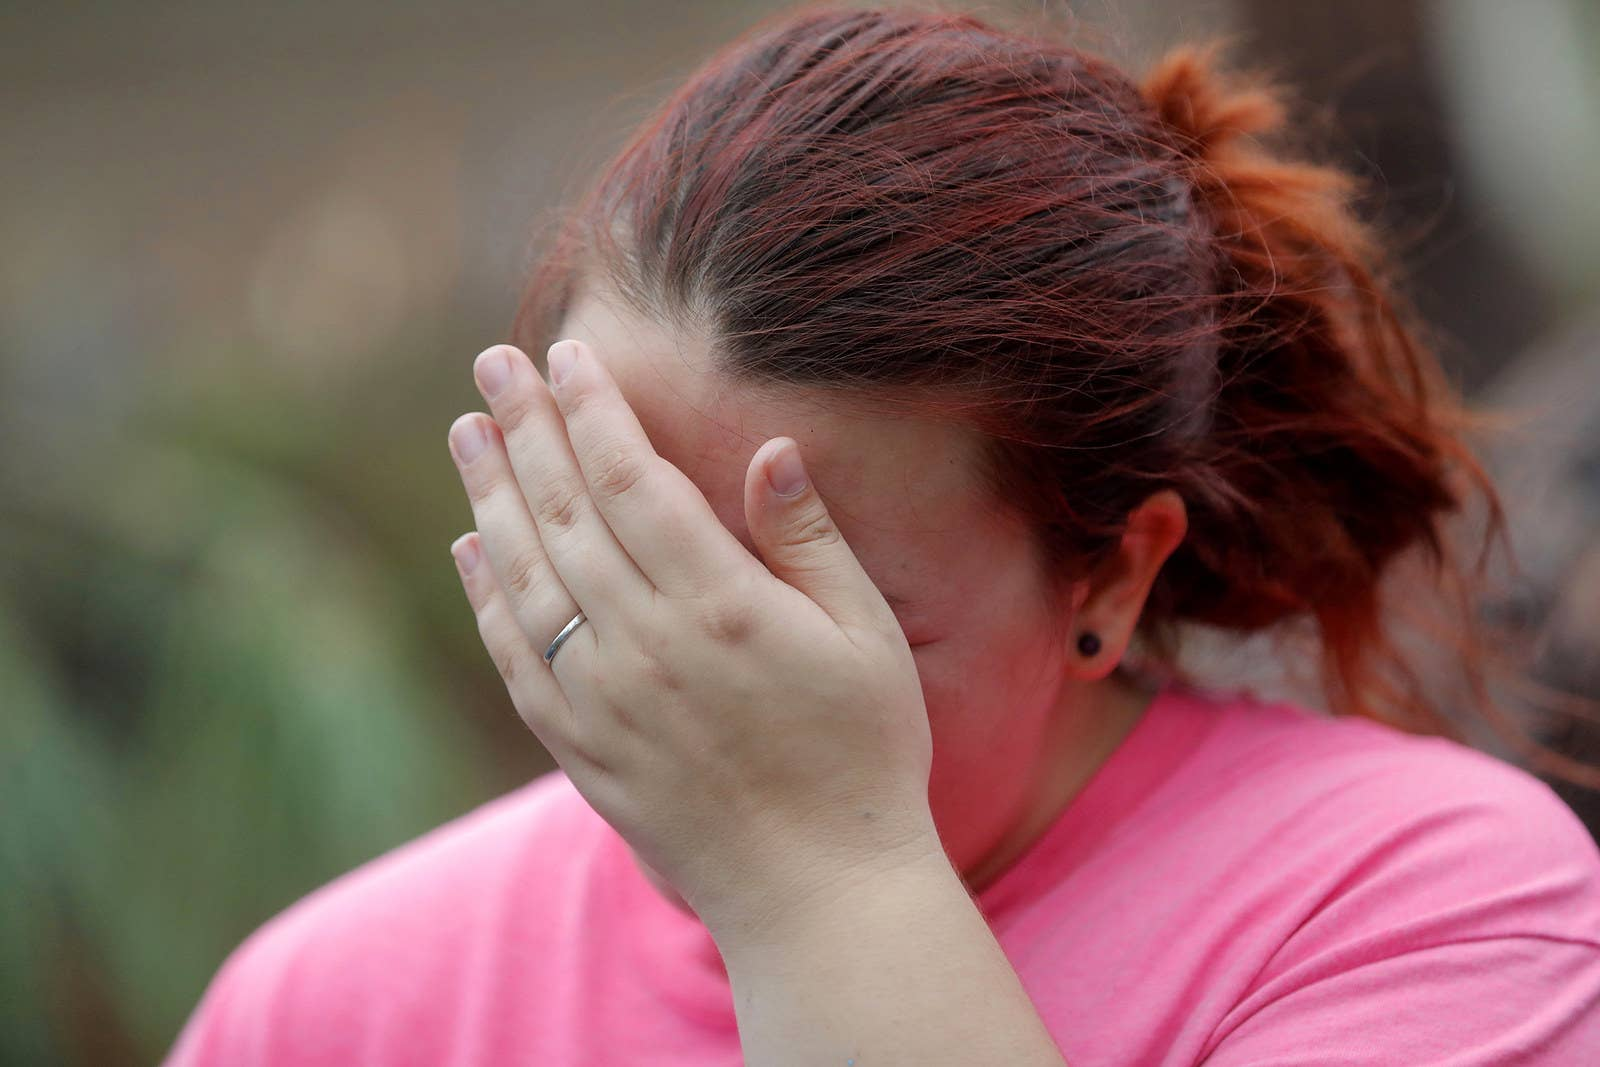 Kaylee O'Brian cries as she's unable to find her cat after several trees fell on her now-destroyed home in Panama City, Florida.